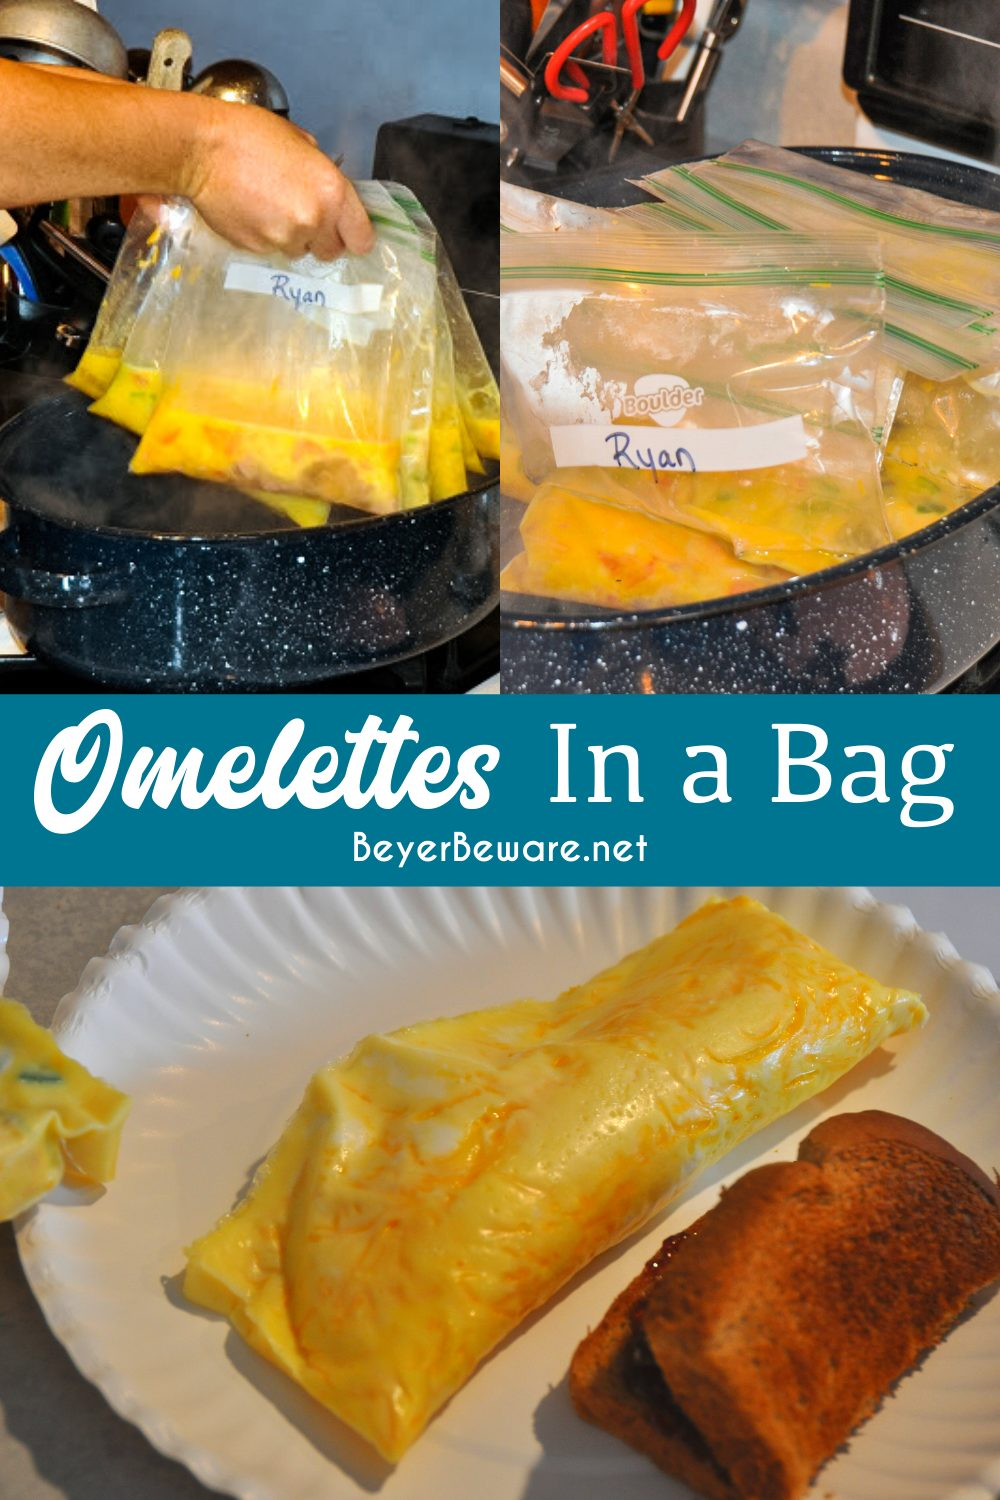 Omelettes in a bag are perfect for camping or if have a group to feed breakfast to at home to make individualized requests for eggs, quickly. #Eggs #Omelettes #Recipes #Camping #EasyRecipes